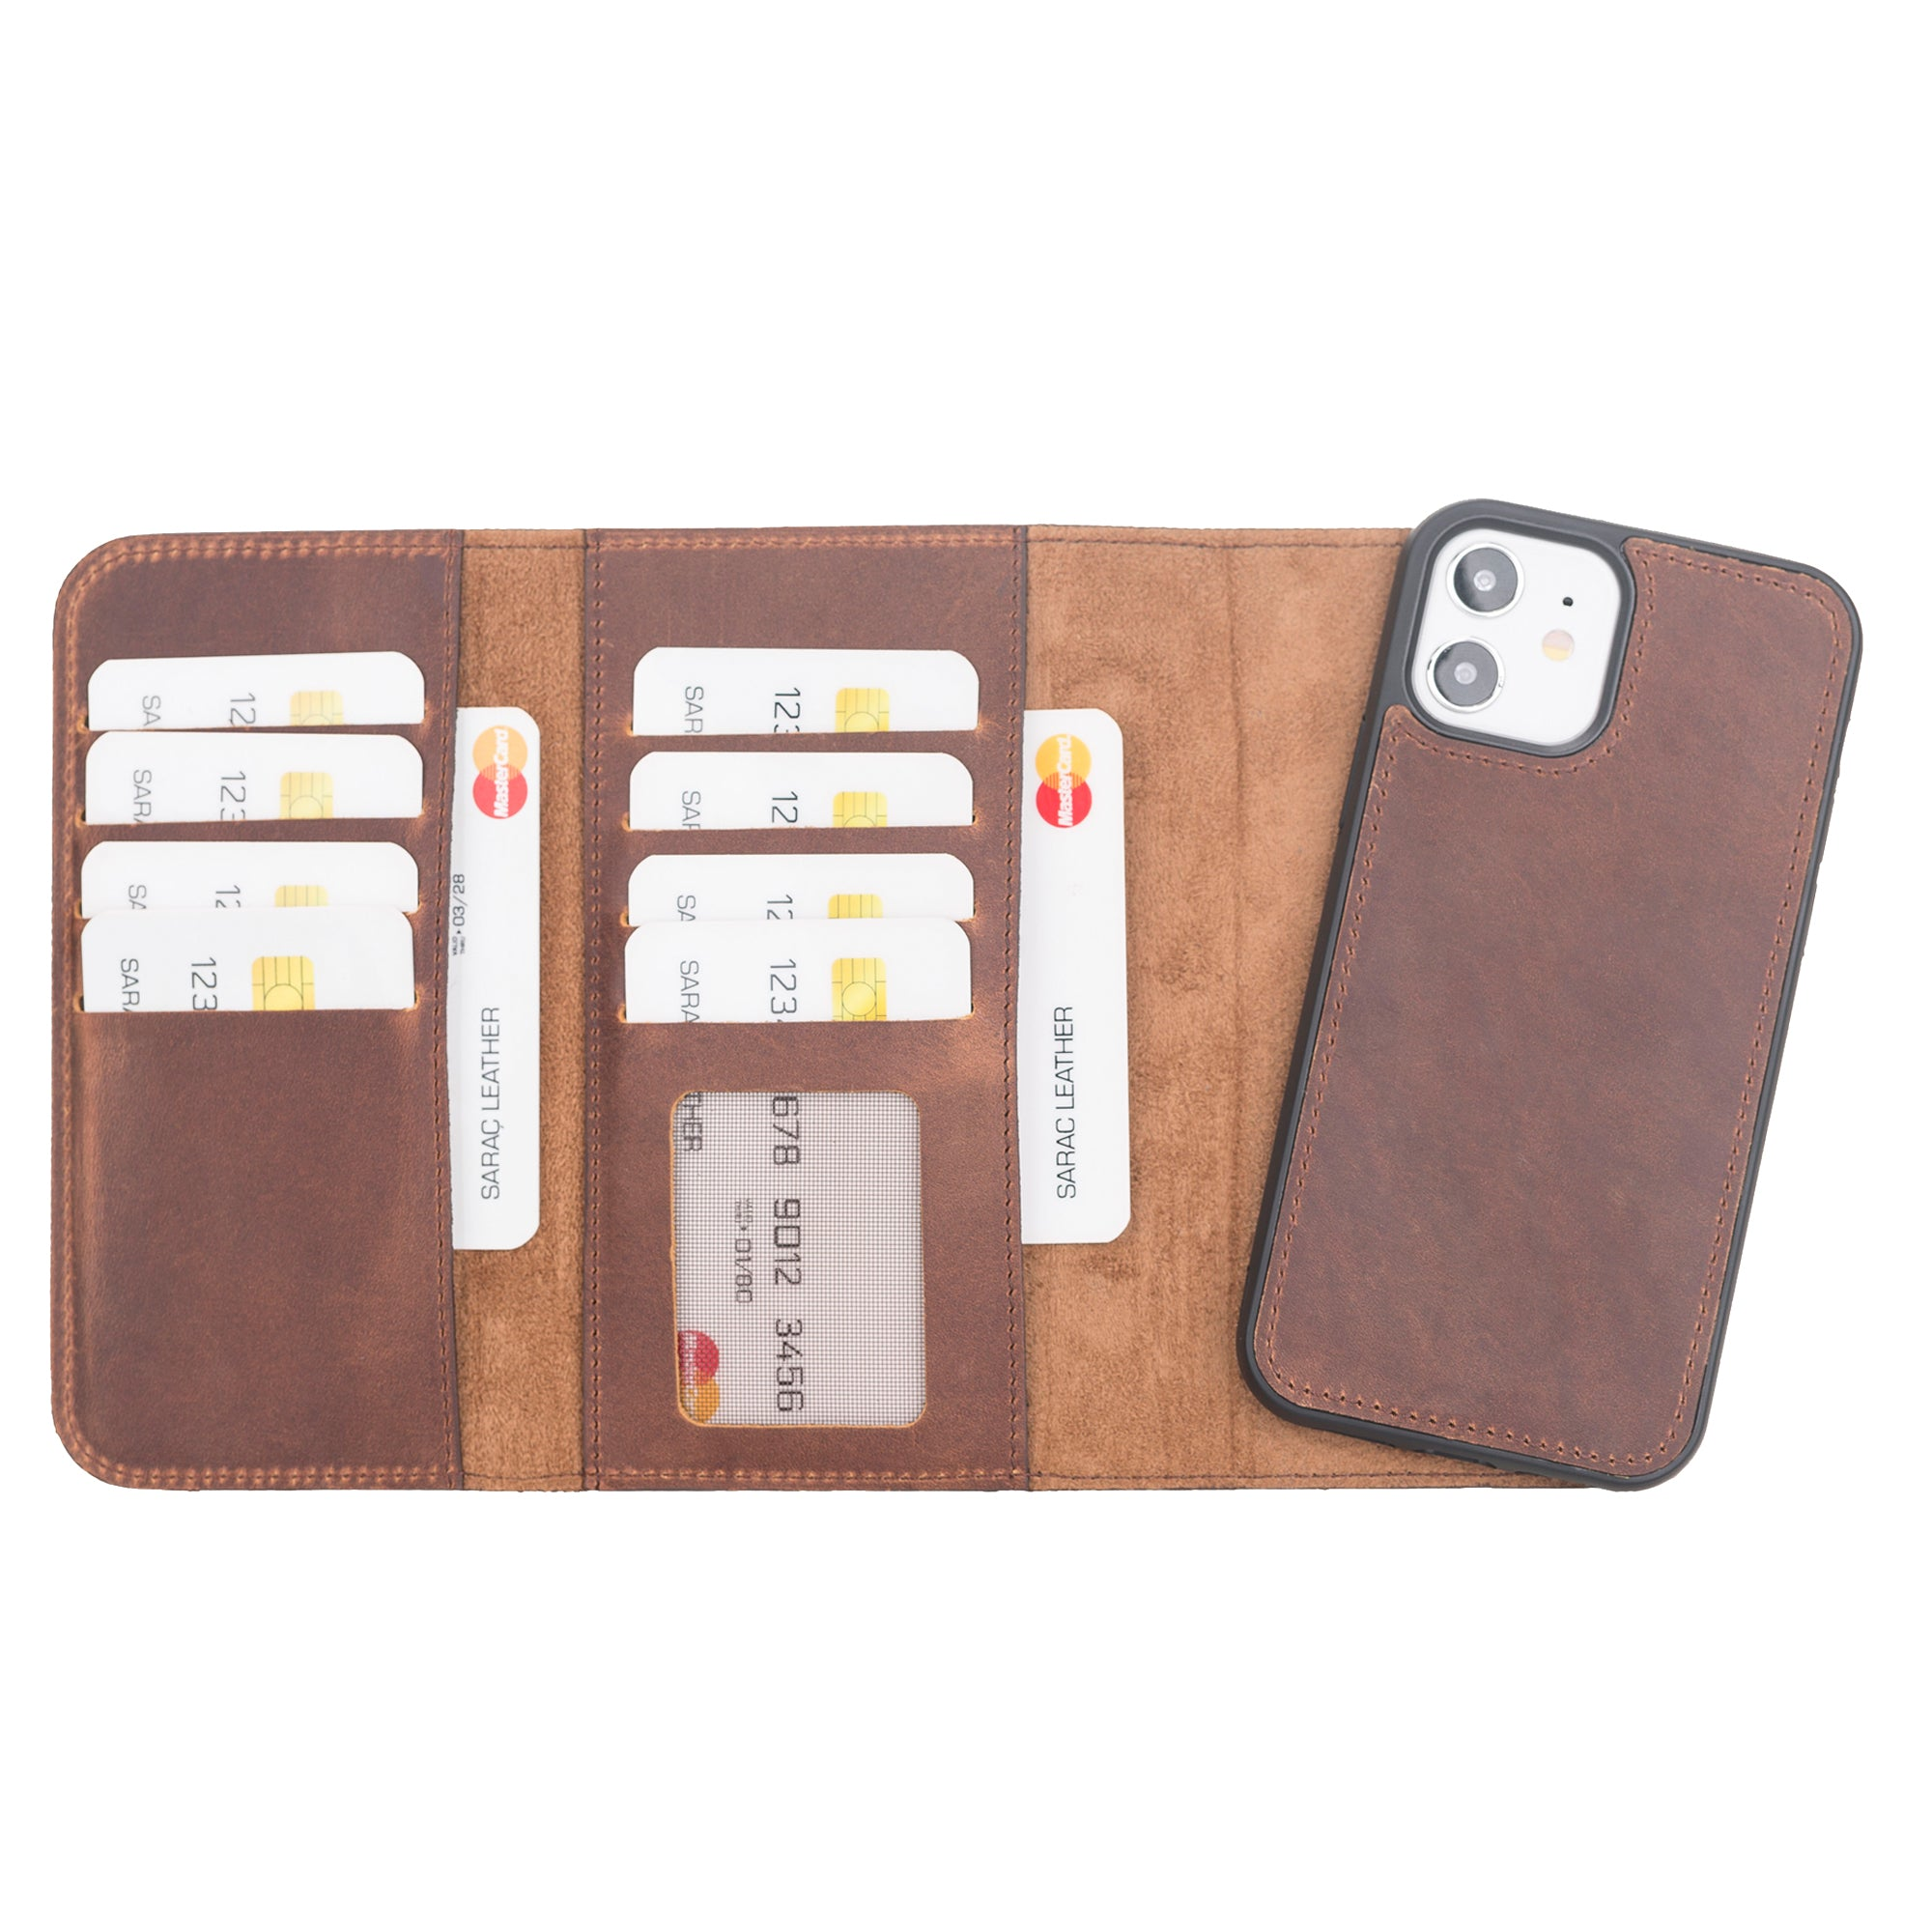 "Santa Magnetic Detachable Leather Wallet Case for iPhone 12 (6.1"") - BROWN - saracleather"